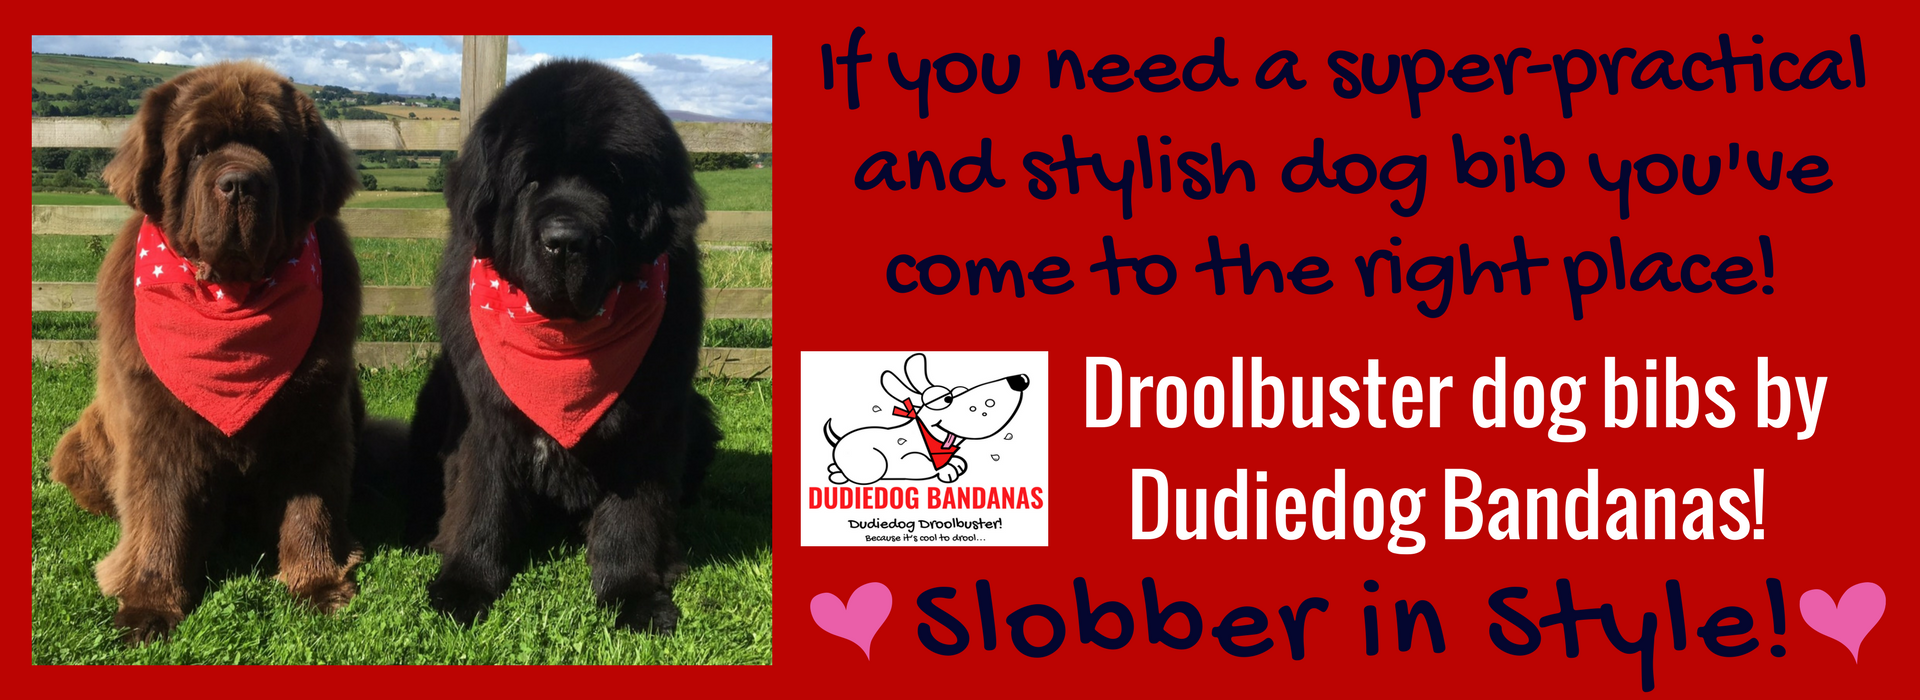 If you need a super practical and stylish dog bib check out the Droolbuster at Dudiedog Bandanas! Giant sizes available!